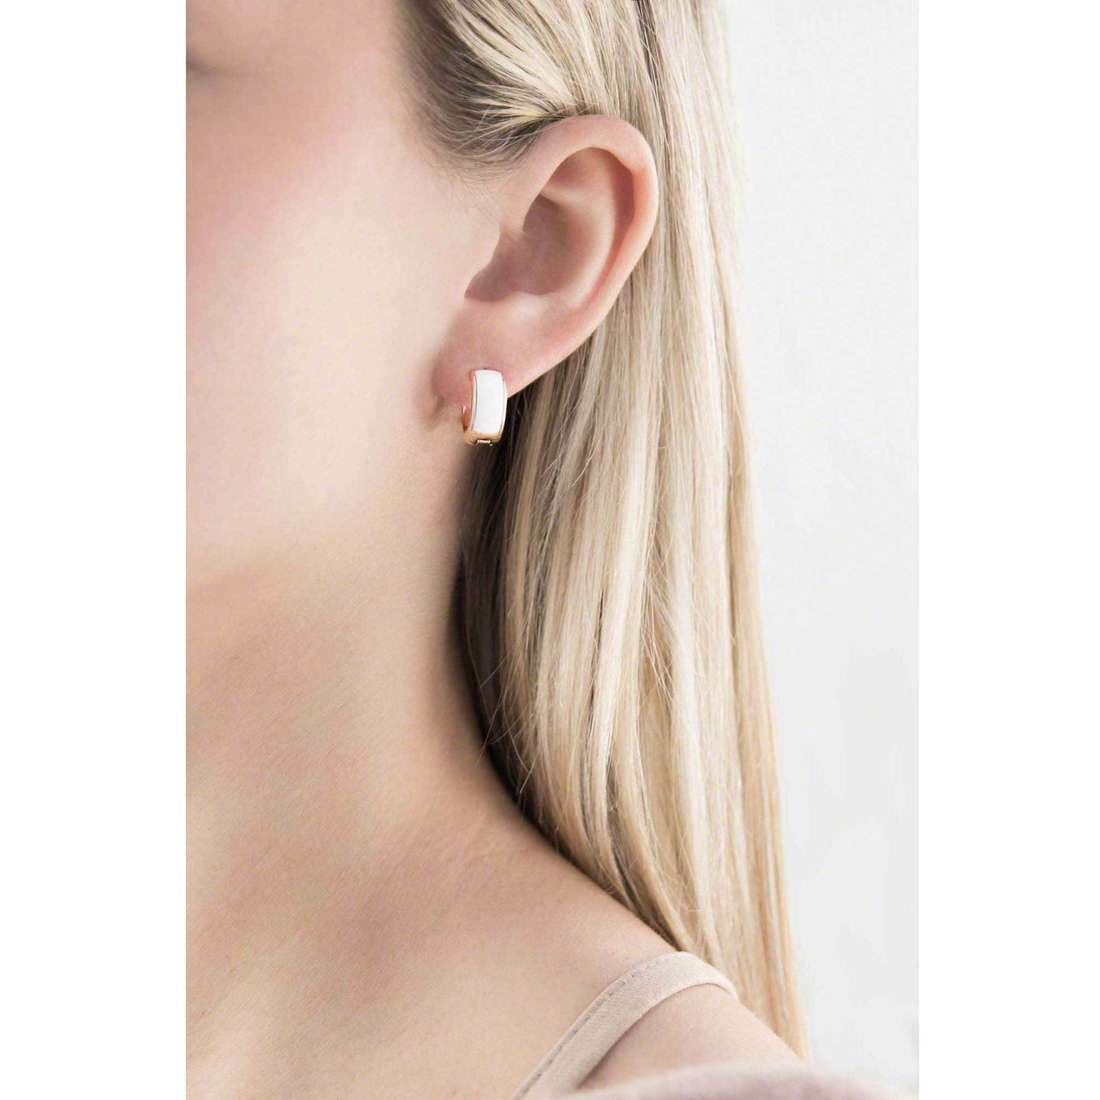 Fossil boucles d'oreille Spring 14 femme JF01120791 indosso